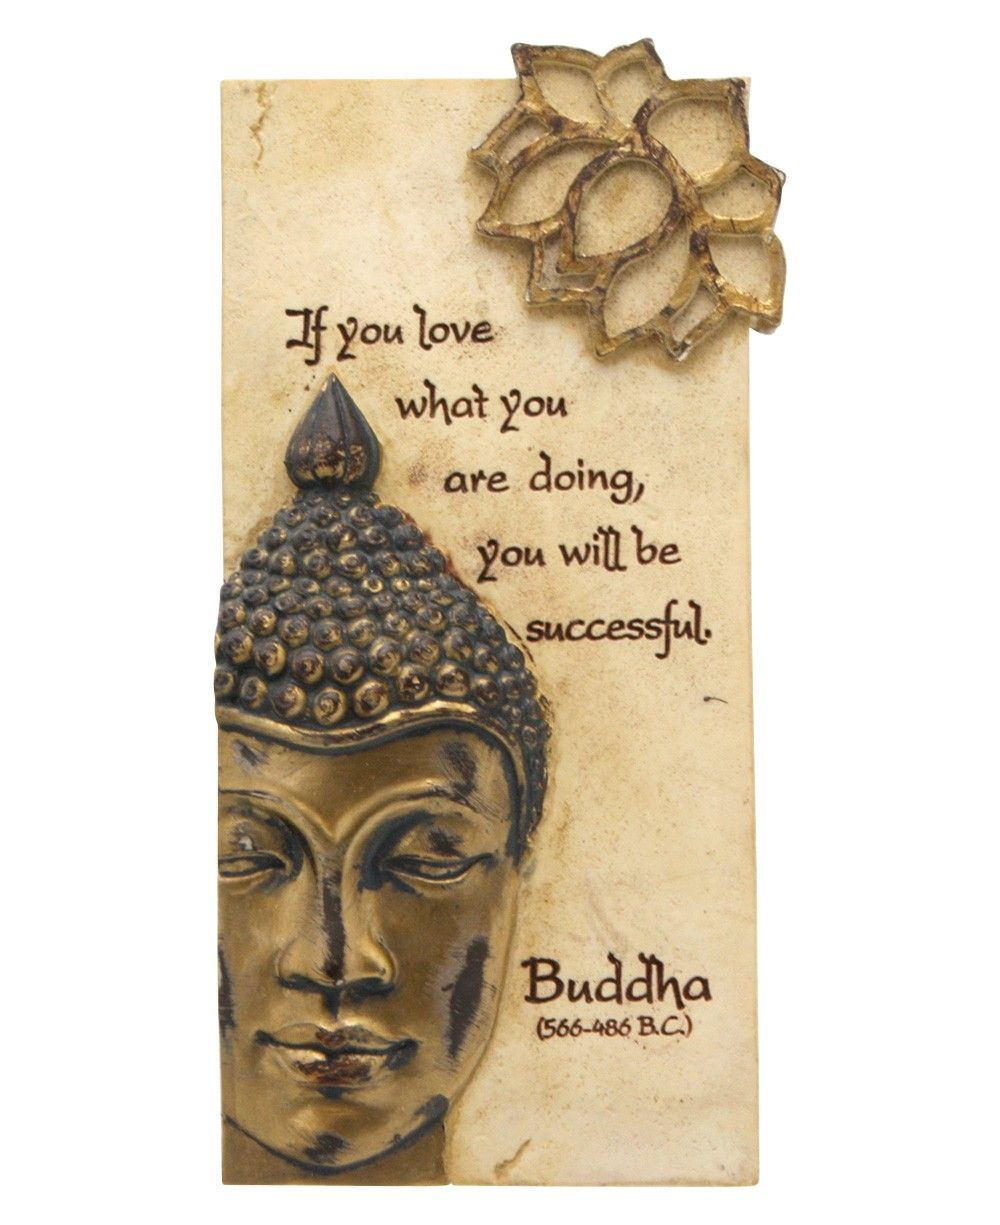 Buddhist Quotes On Love If You Love What You Are Doing You Will Be Successfulbuddha